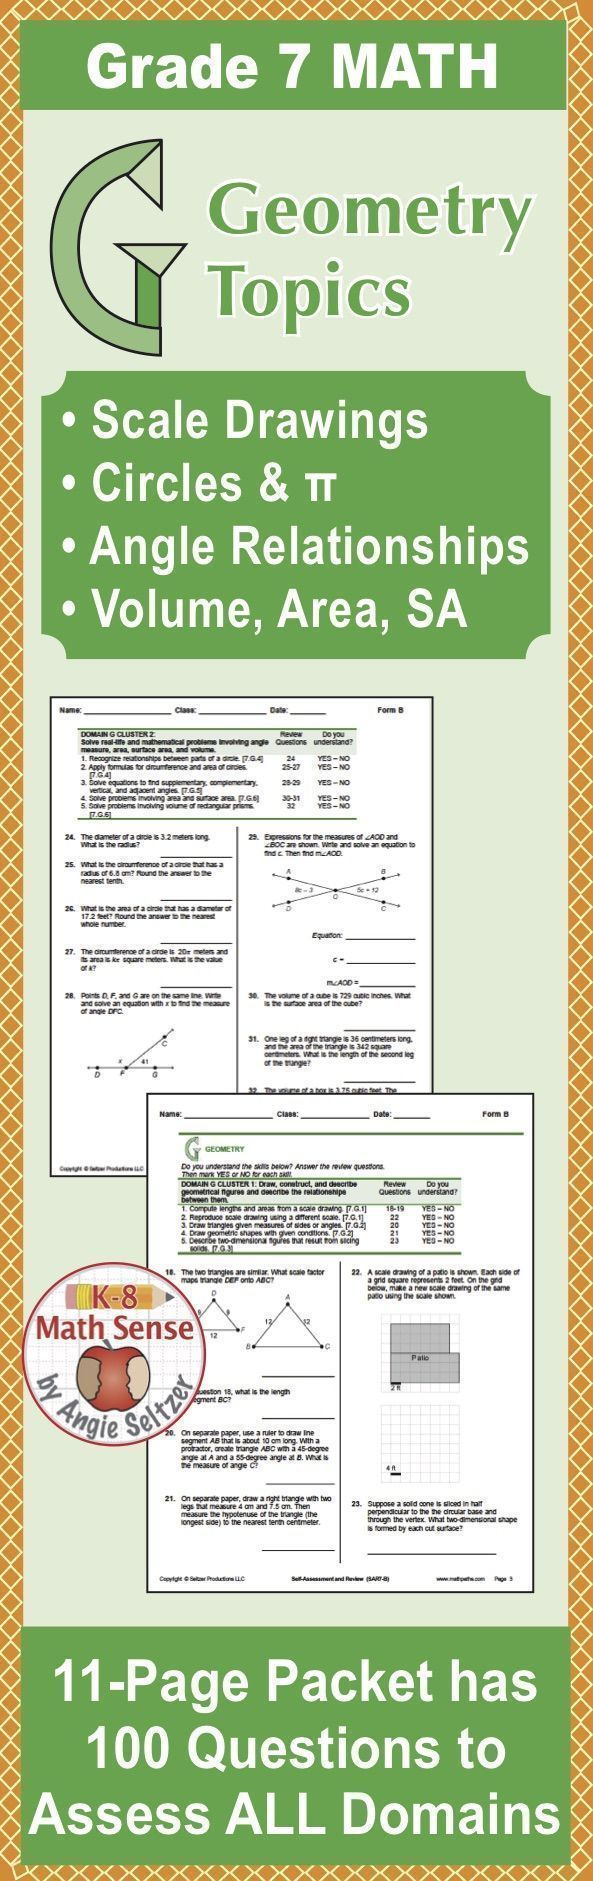 Review Geometry Topics Including Circles Scale Drawings Angle Relationships And Other Grade 7 Math In This Comprehensi This Or That Questions Math Ccss Math [ 1881 x 593 Pixel ]